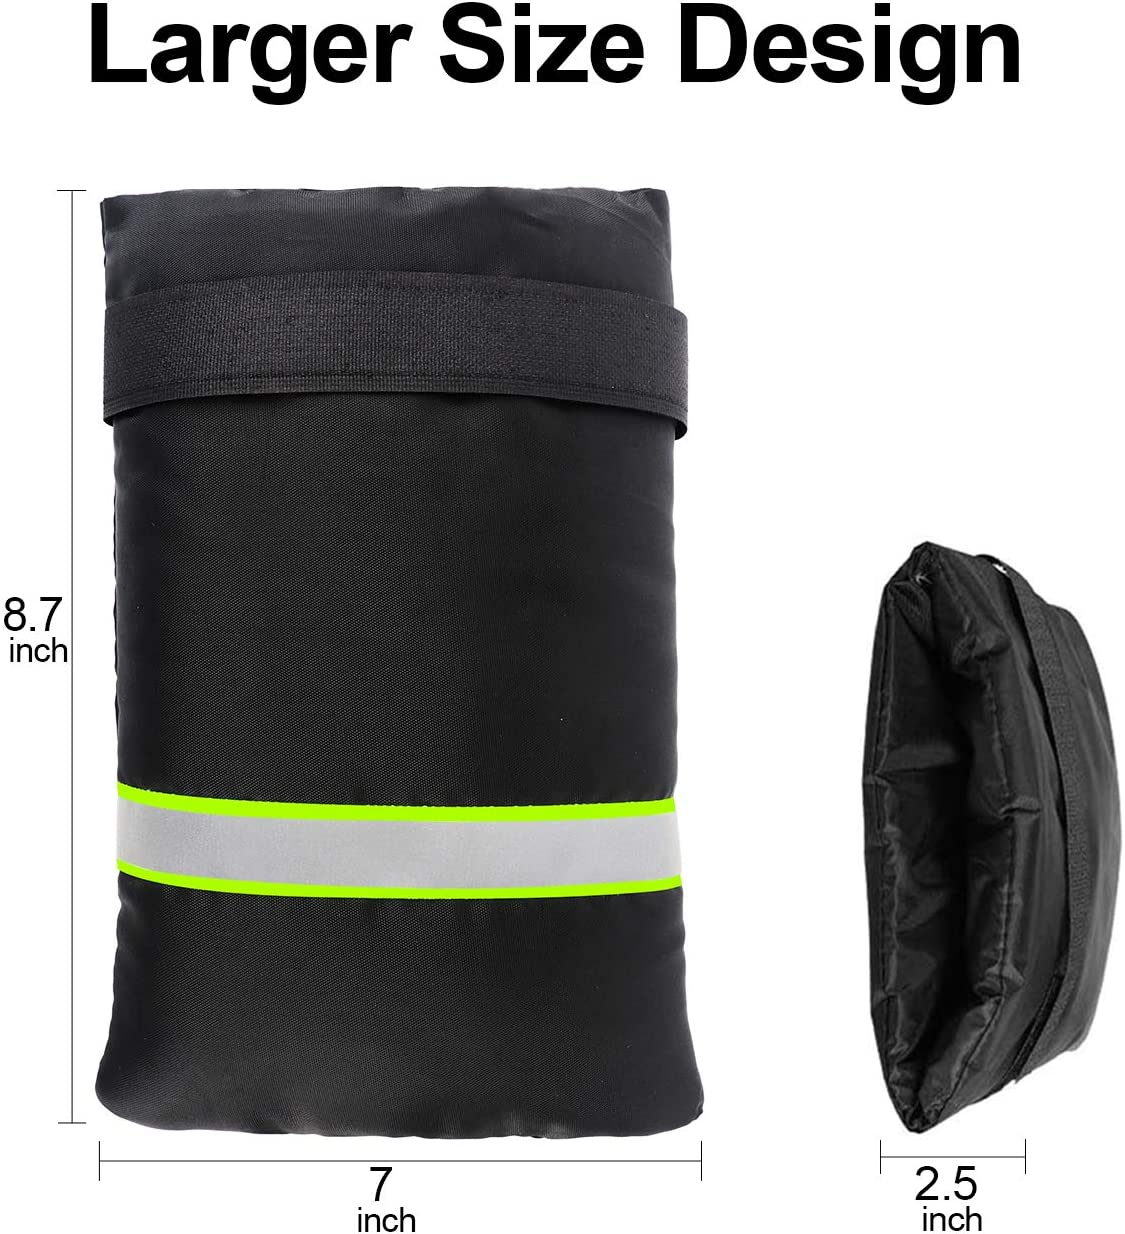 Faucet Cover Jacket Insulated Protector with Reflective Strap Garden Outdoor Faucet Covers for Winter 2Pcs 15 x 22cm Darkblack LAMA Outside Faucet Cover,